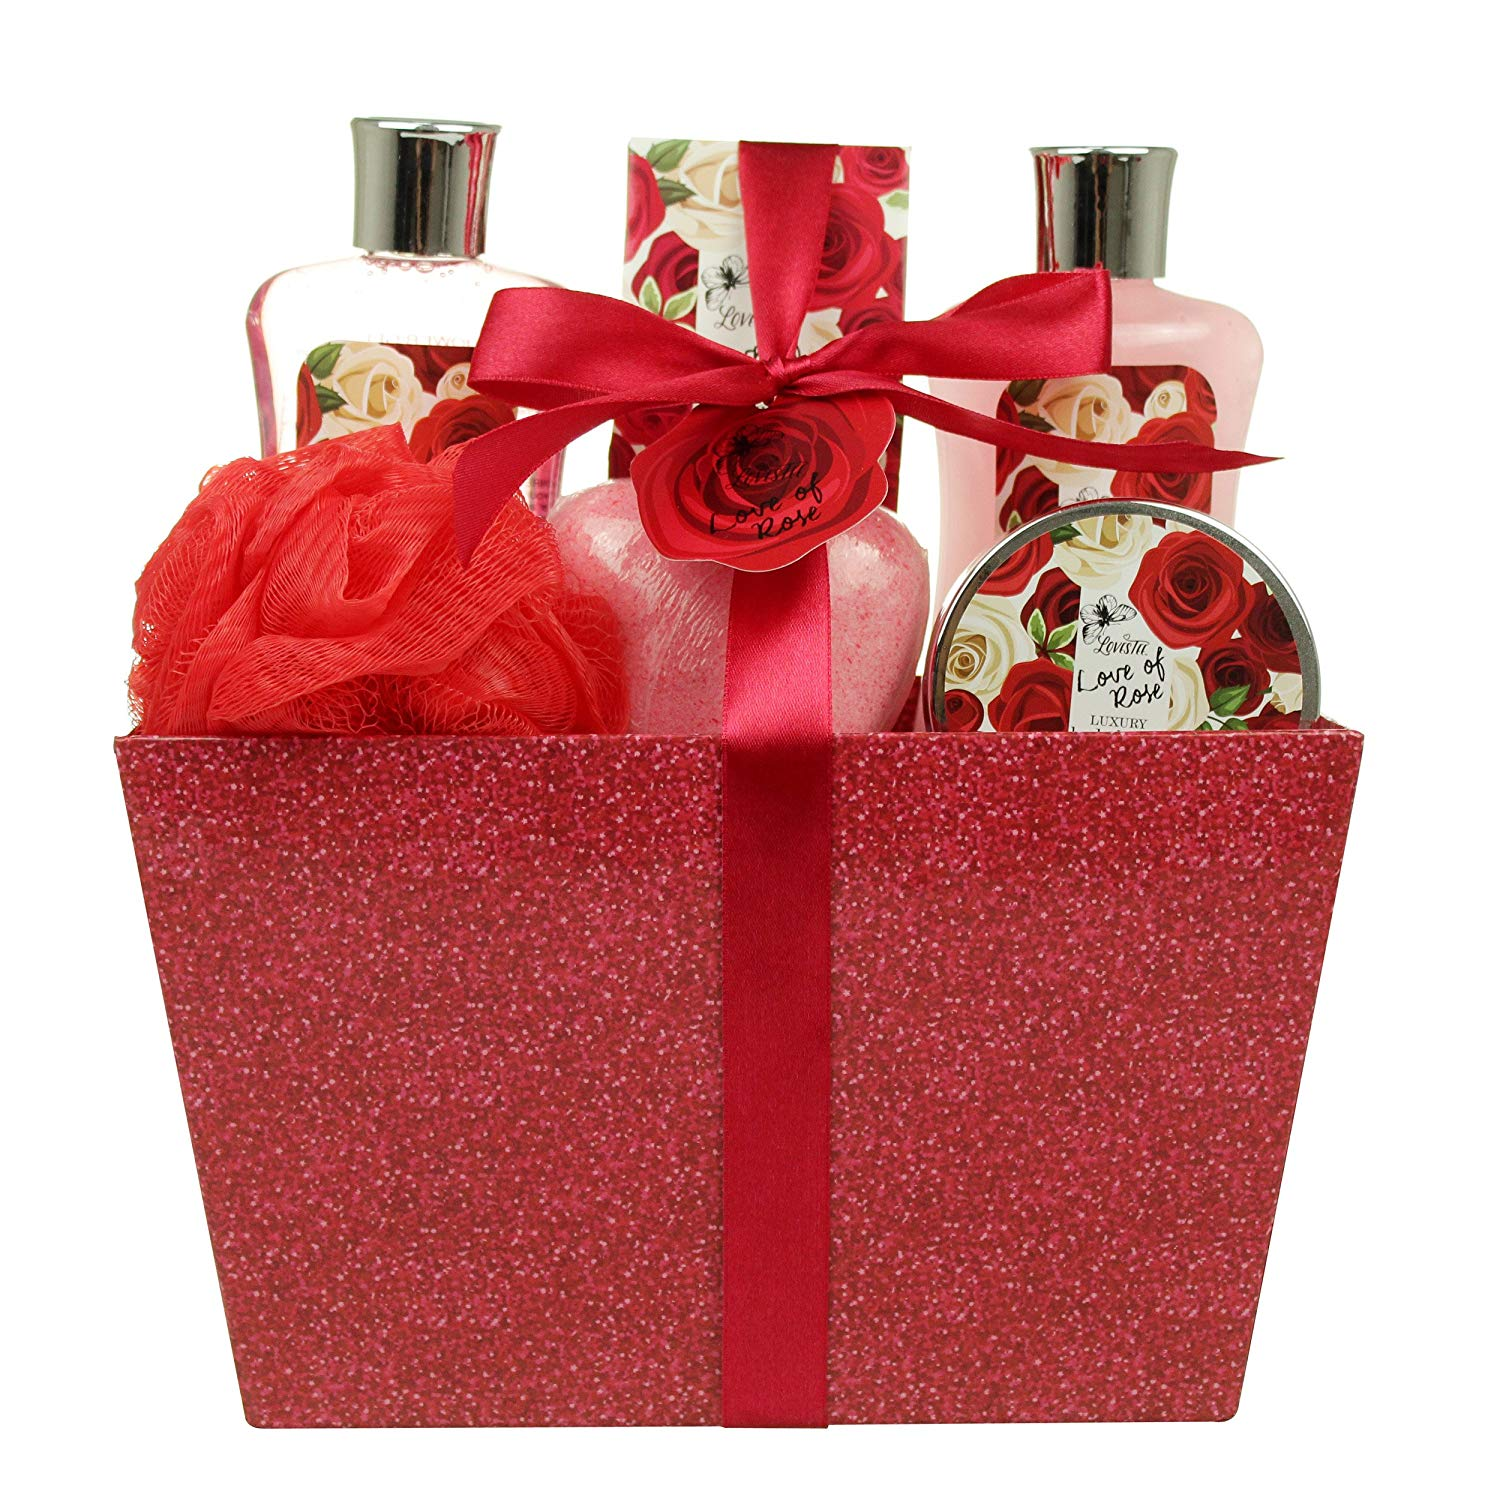 Enter to win a Bath & Body beautiful gift basket Giveaway Image